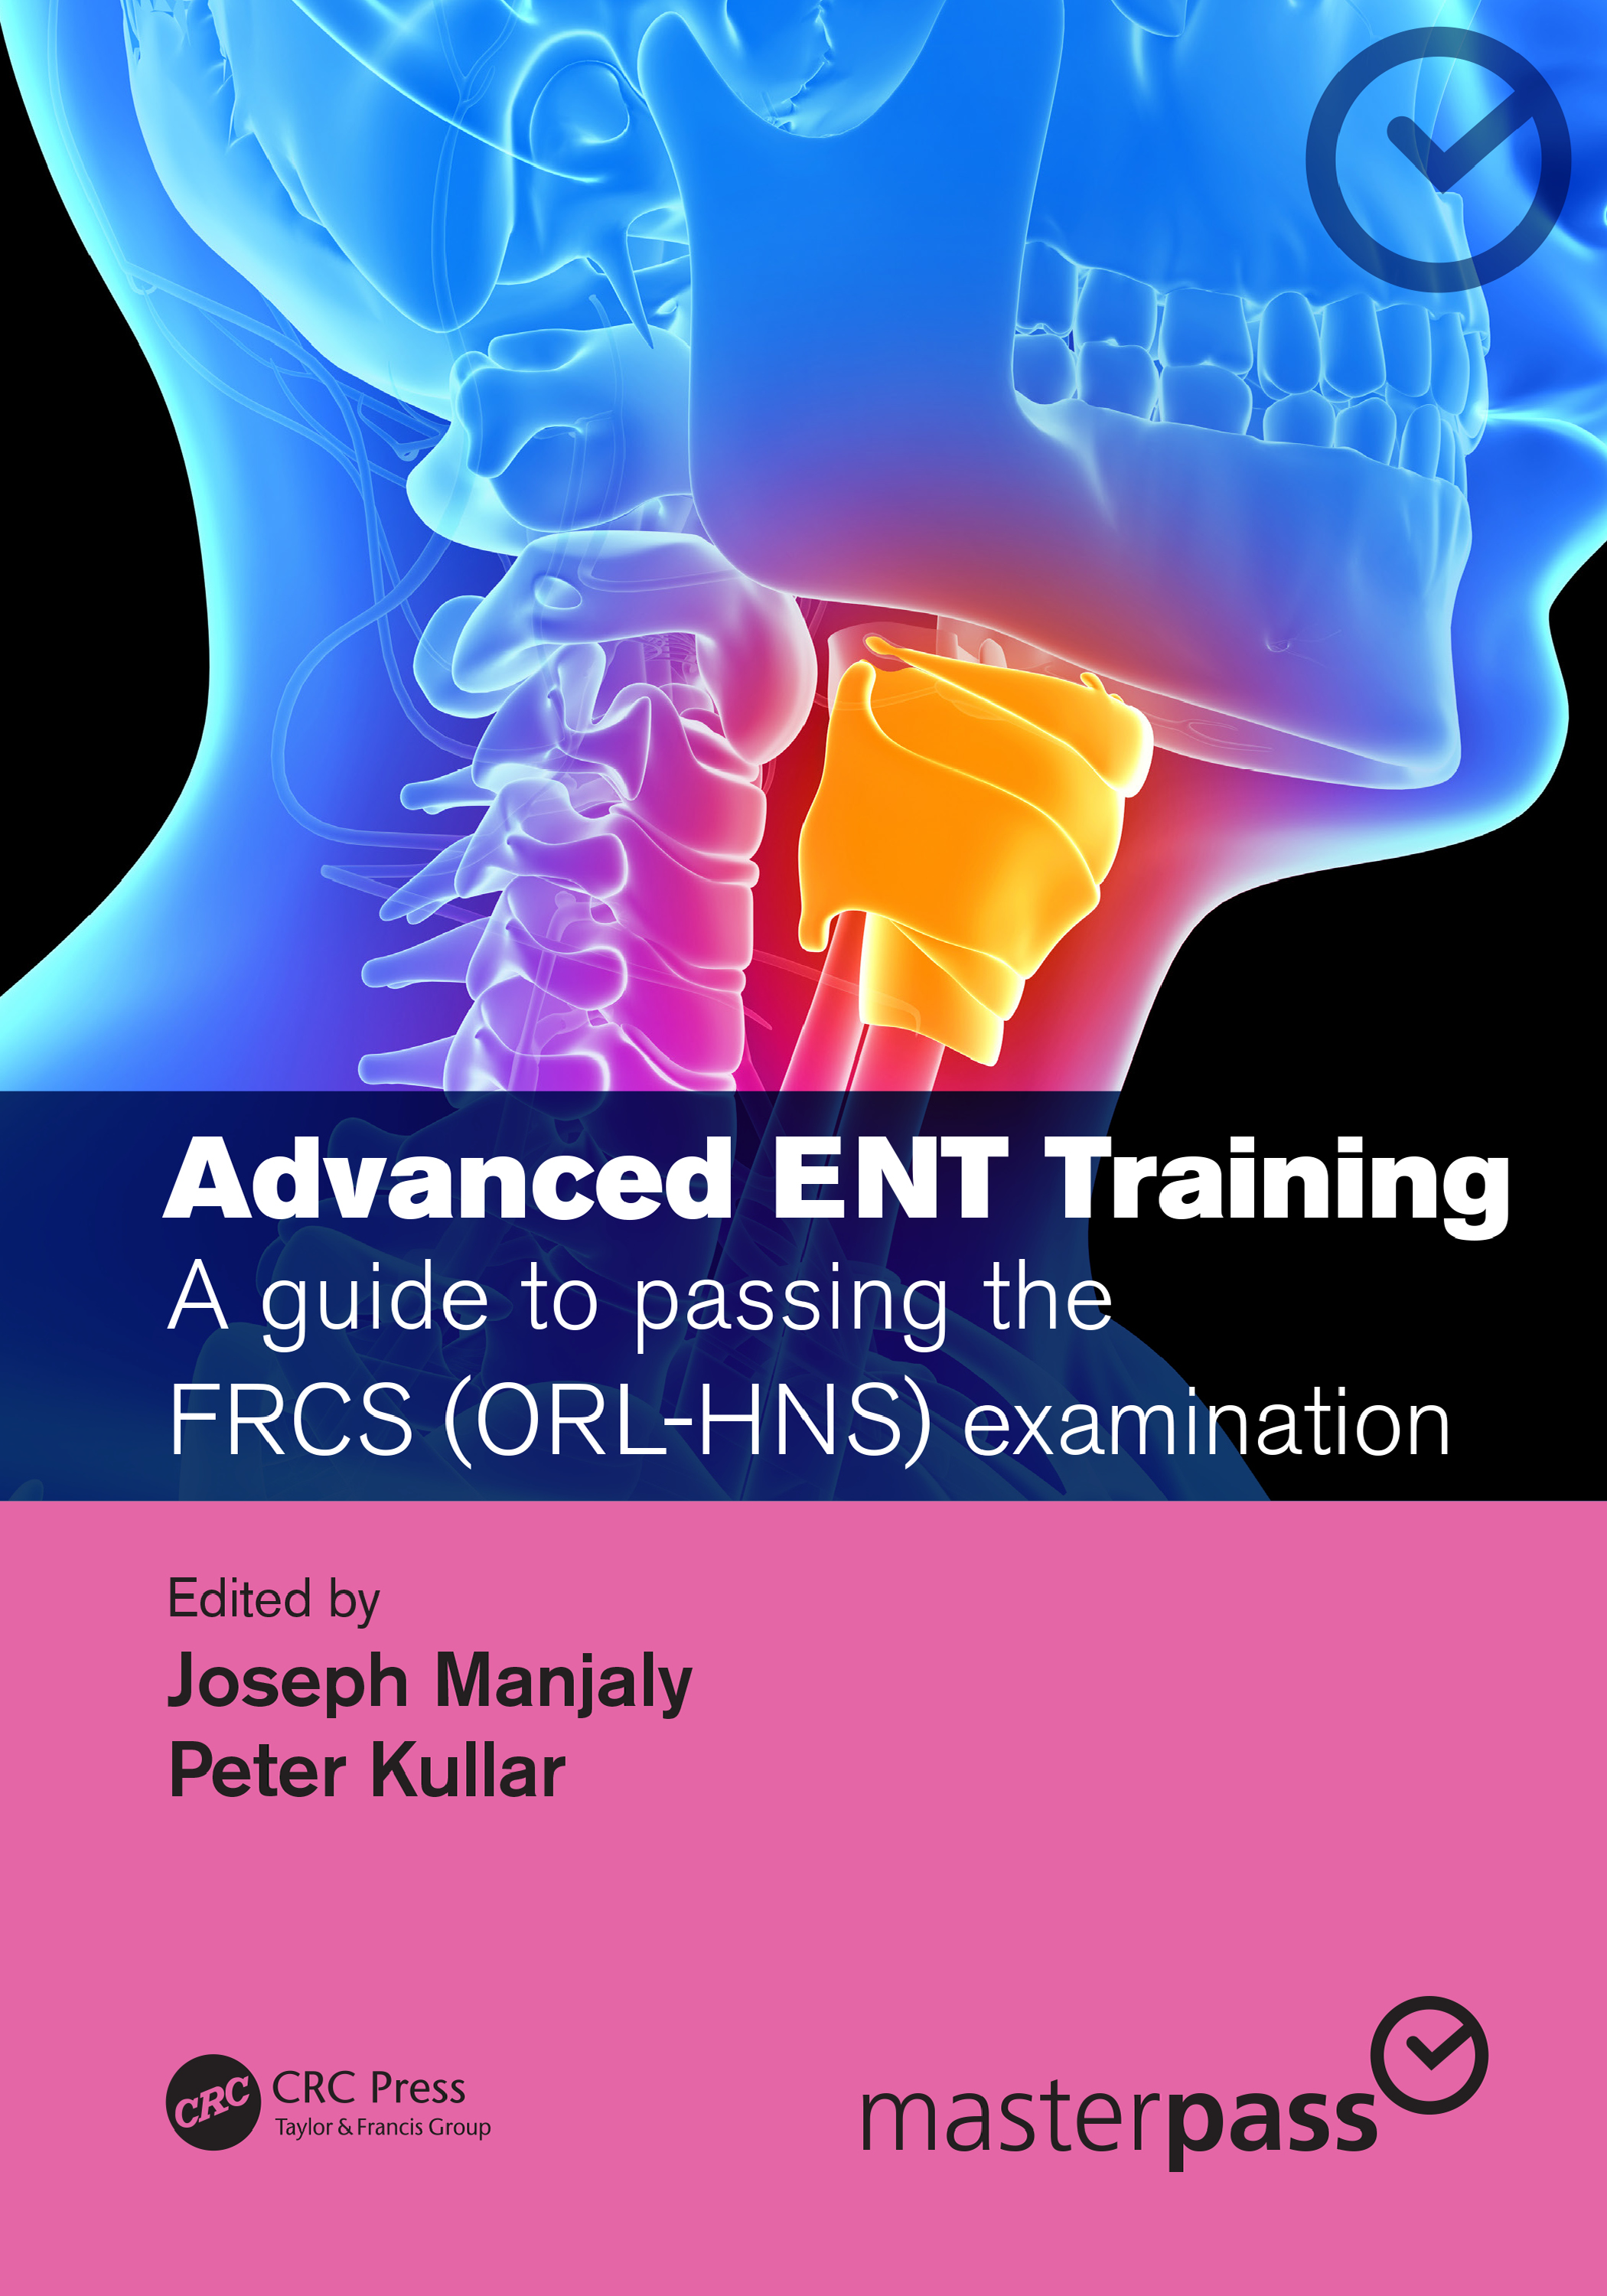 Advanced ENT training: A guide to passing the FRCS (ORL-HNS) examination book cover